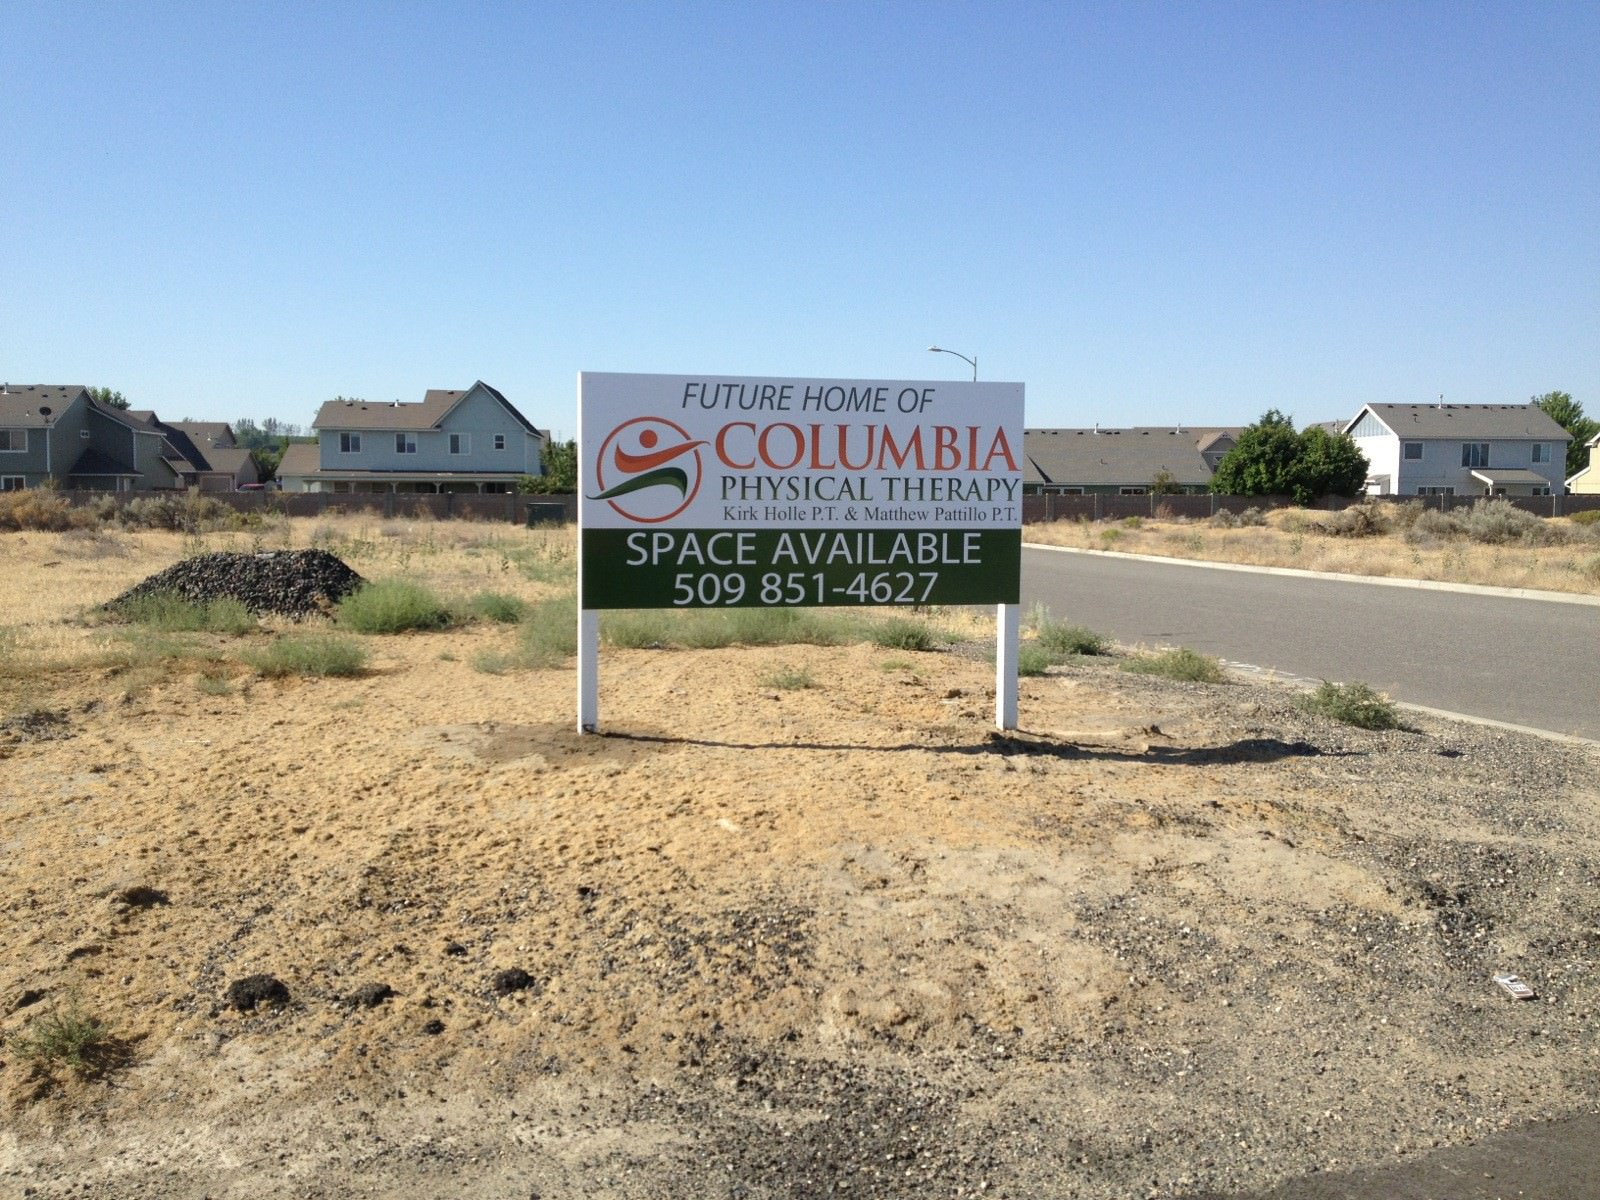 Columbia Physical Therapy Development Site Sign